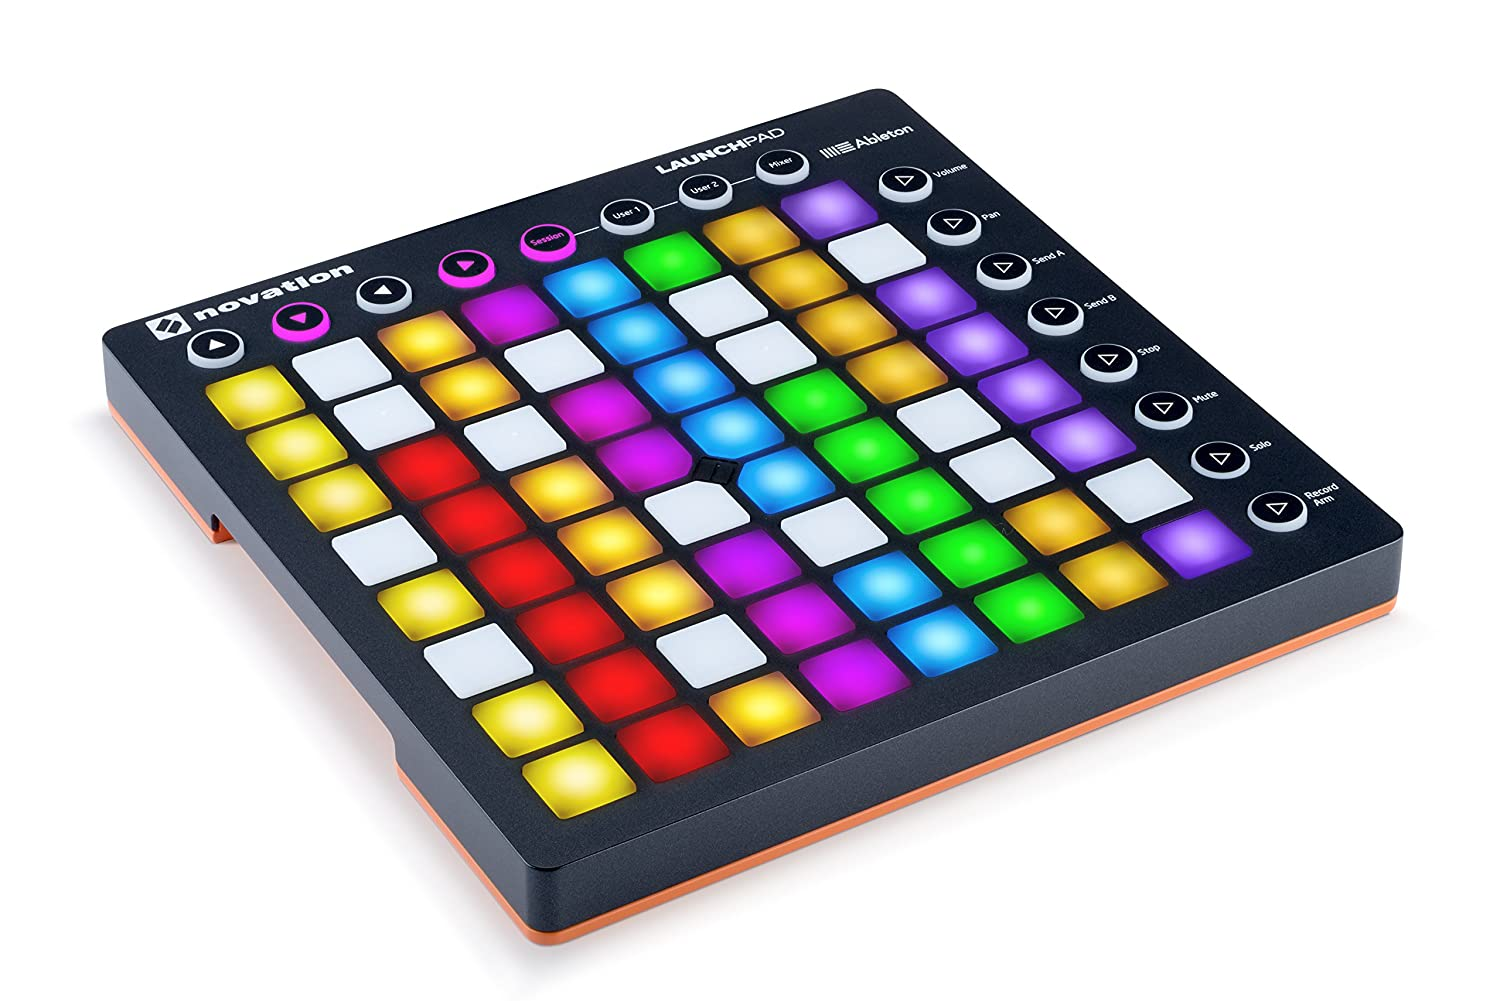 Multi-colored novation pad toy with buttons